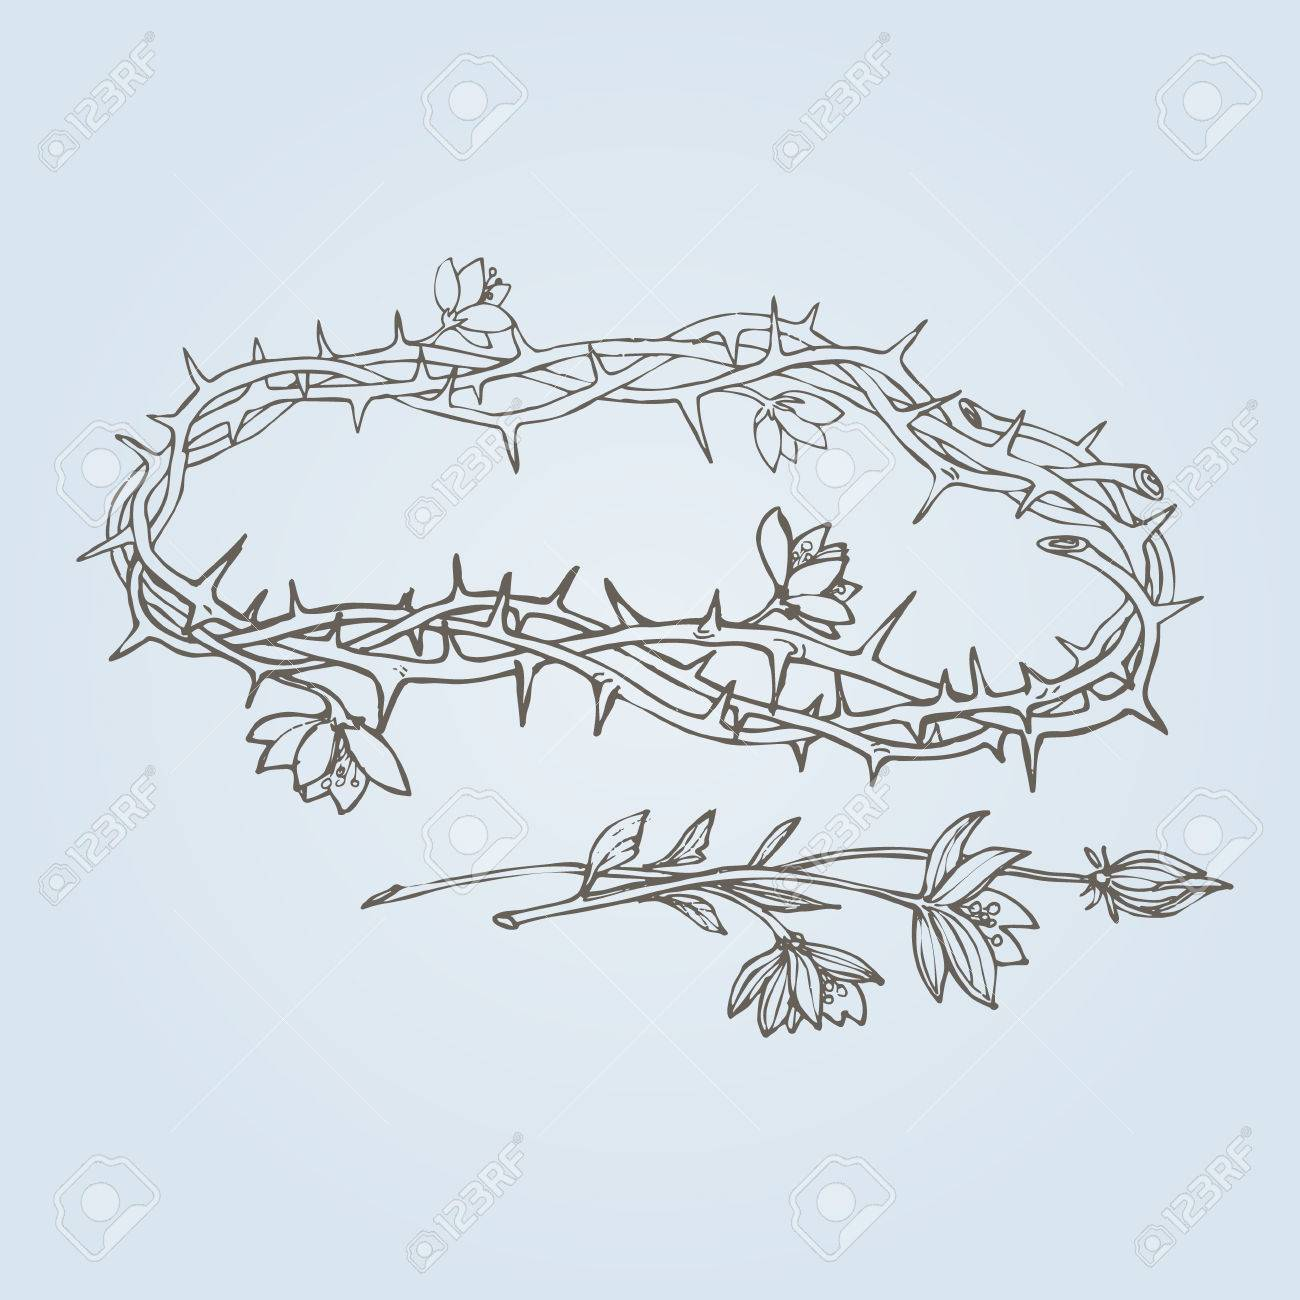 Flowering crown of thorns a symbol of hope resurrection and flowering crown of thorns a symbol of hope resurrection and renewal eps buycottarizona Image collections